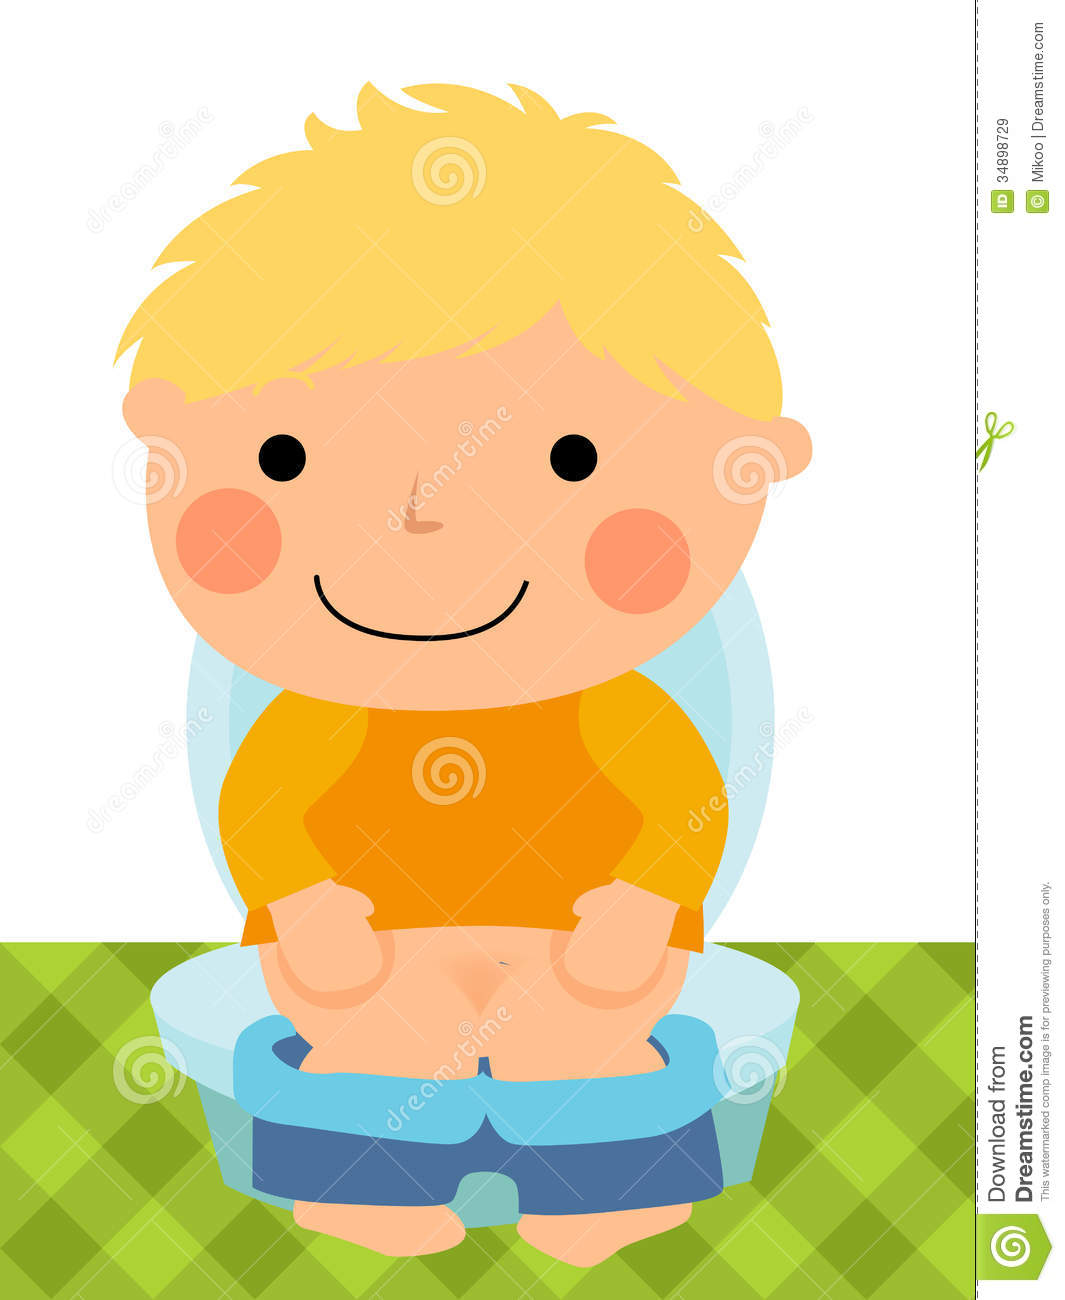 Baby Boy Sitting On The Toilet Royalty Free Stock Images - Image ...